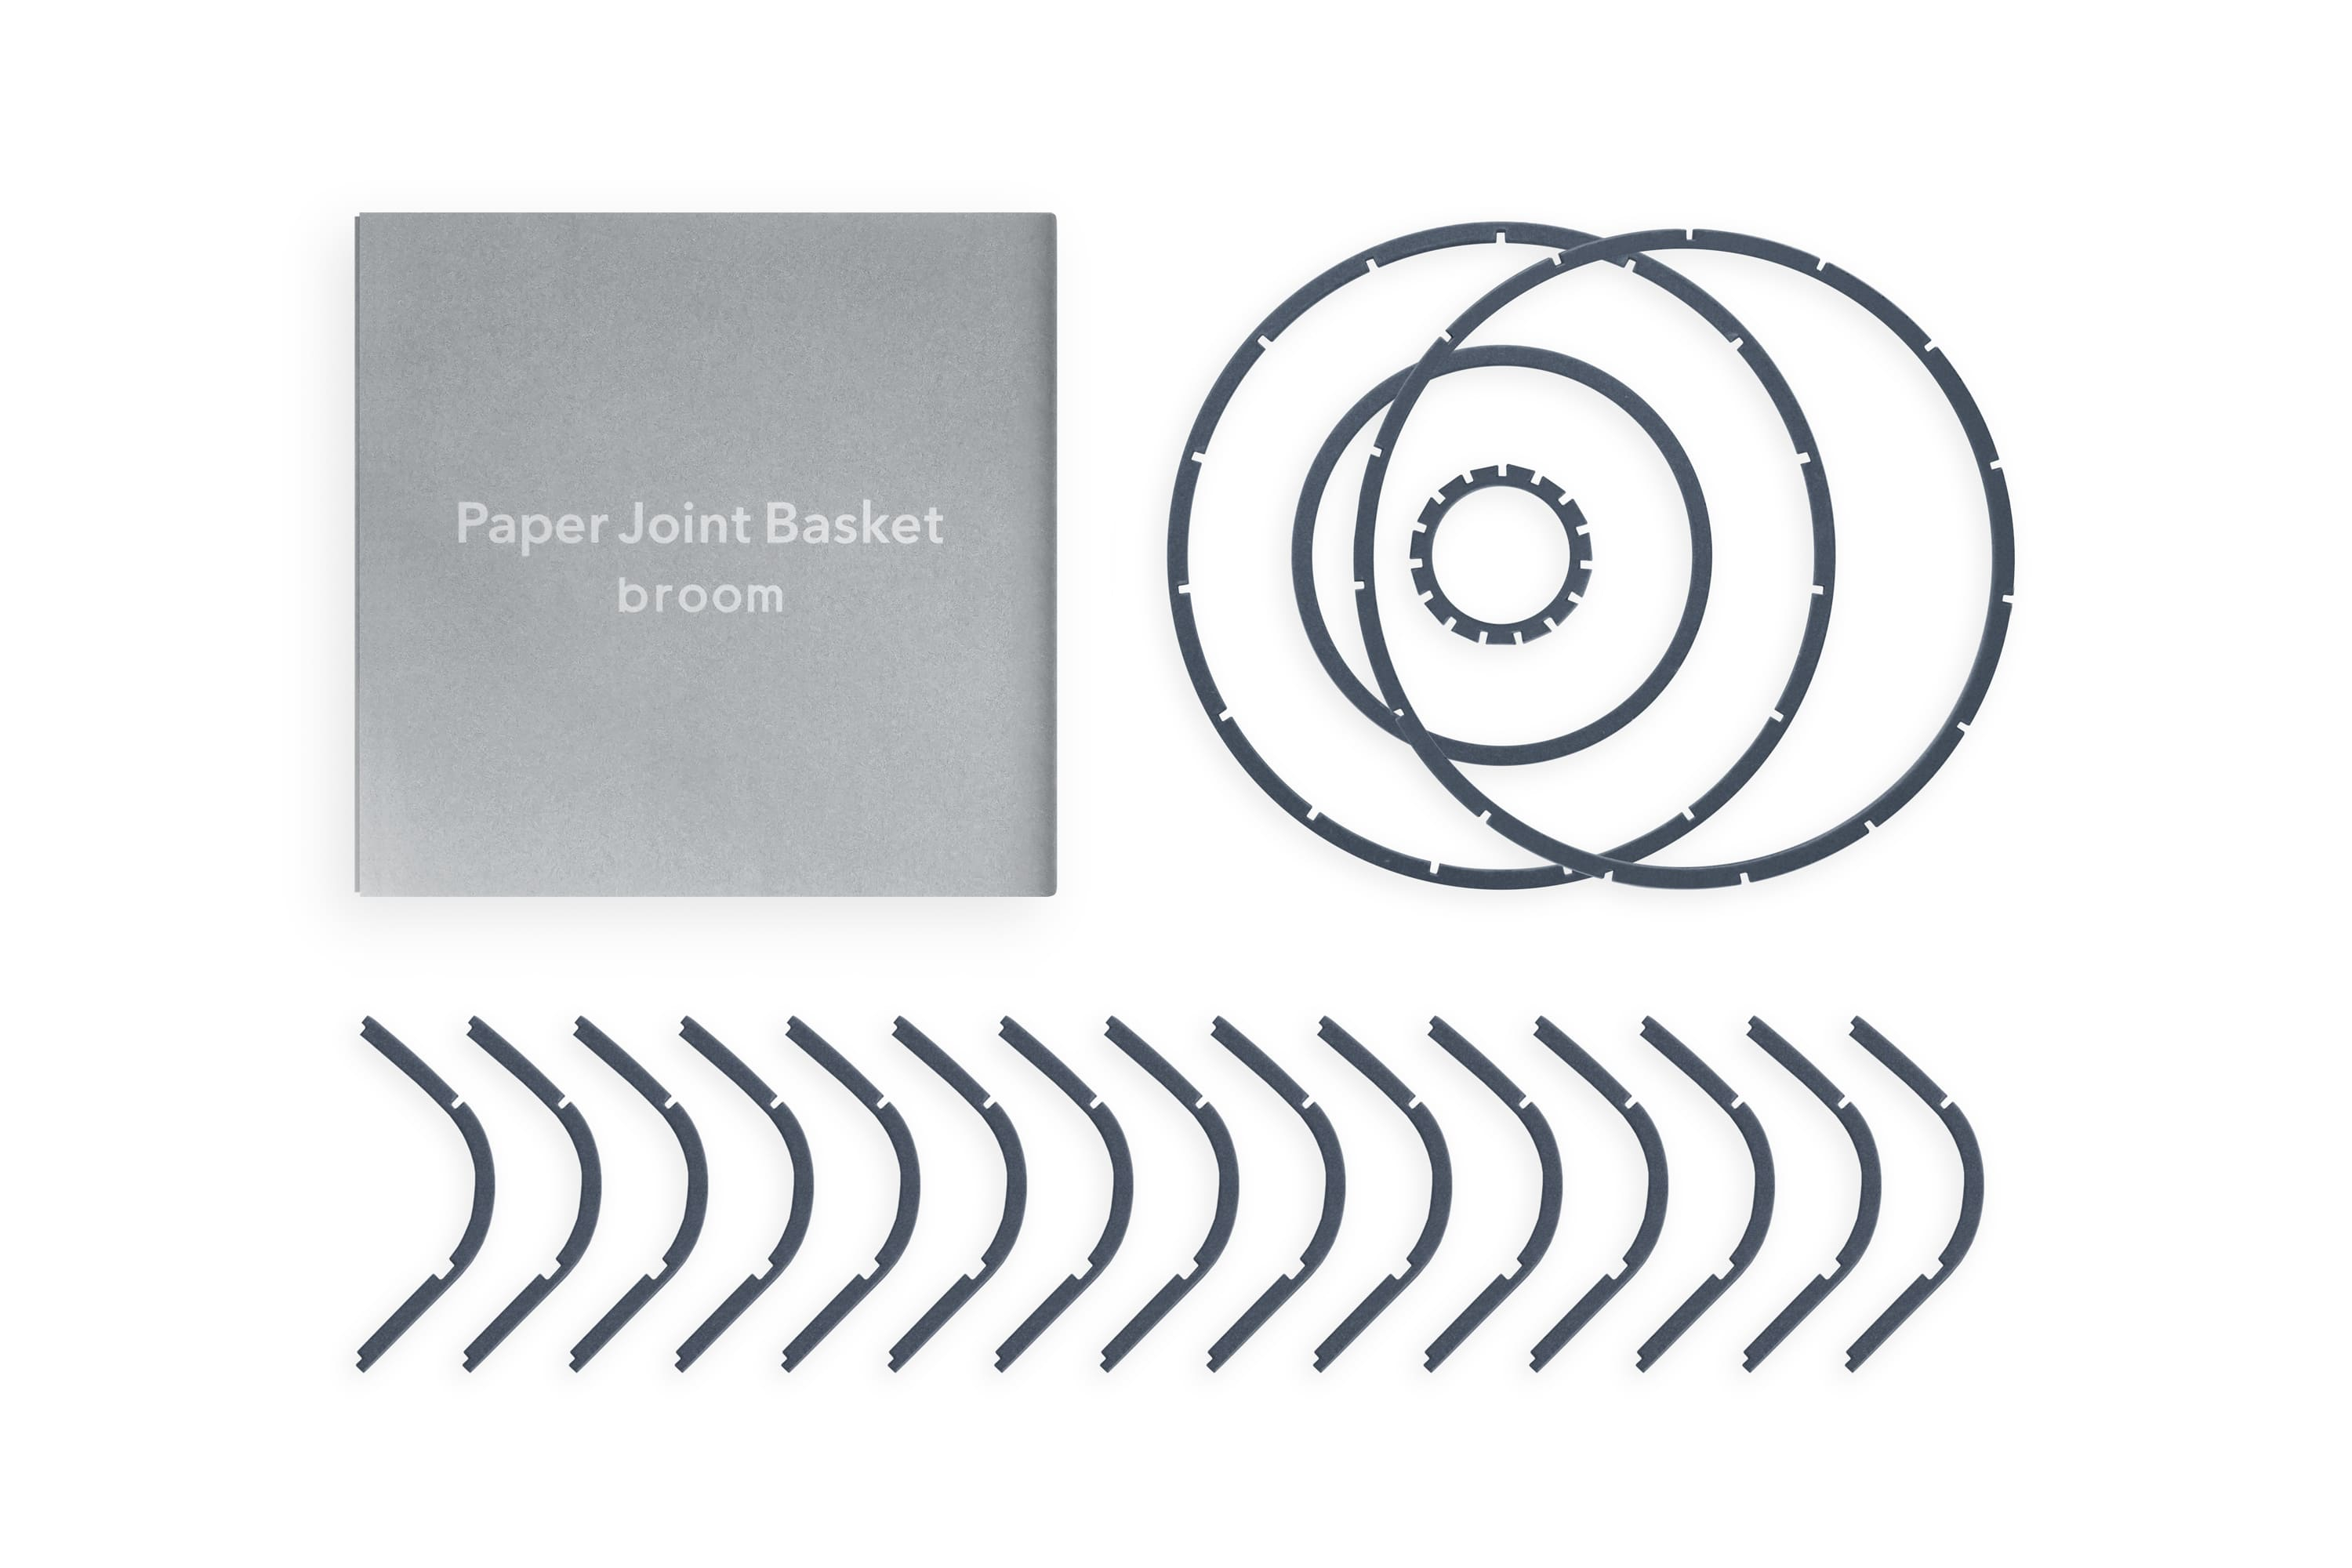 Paper Joint Basket|Package